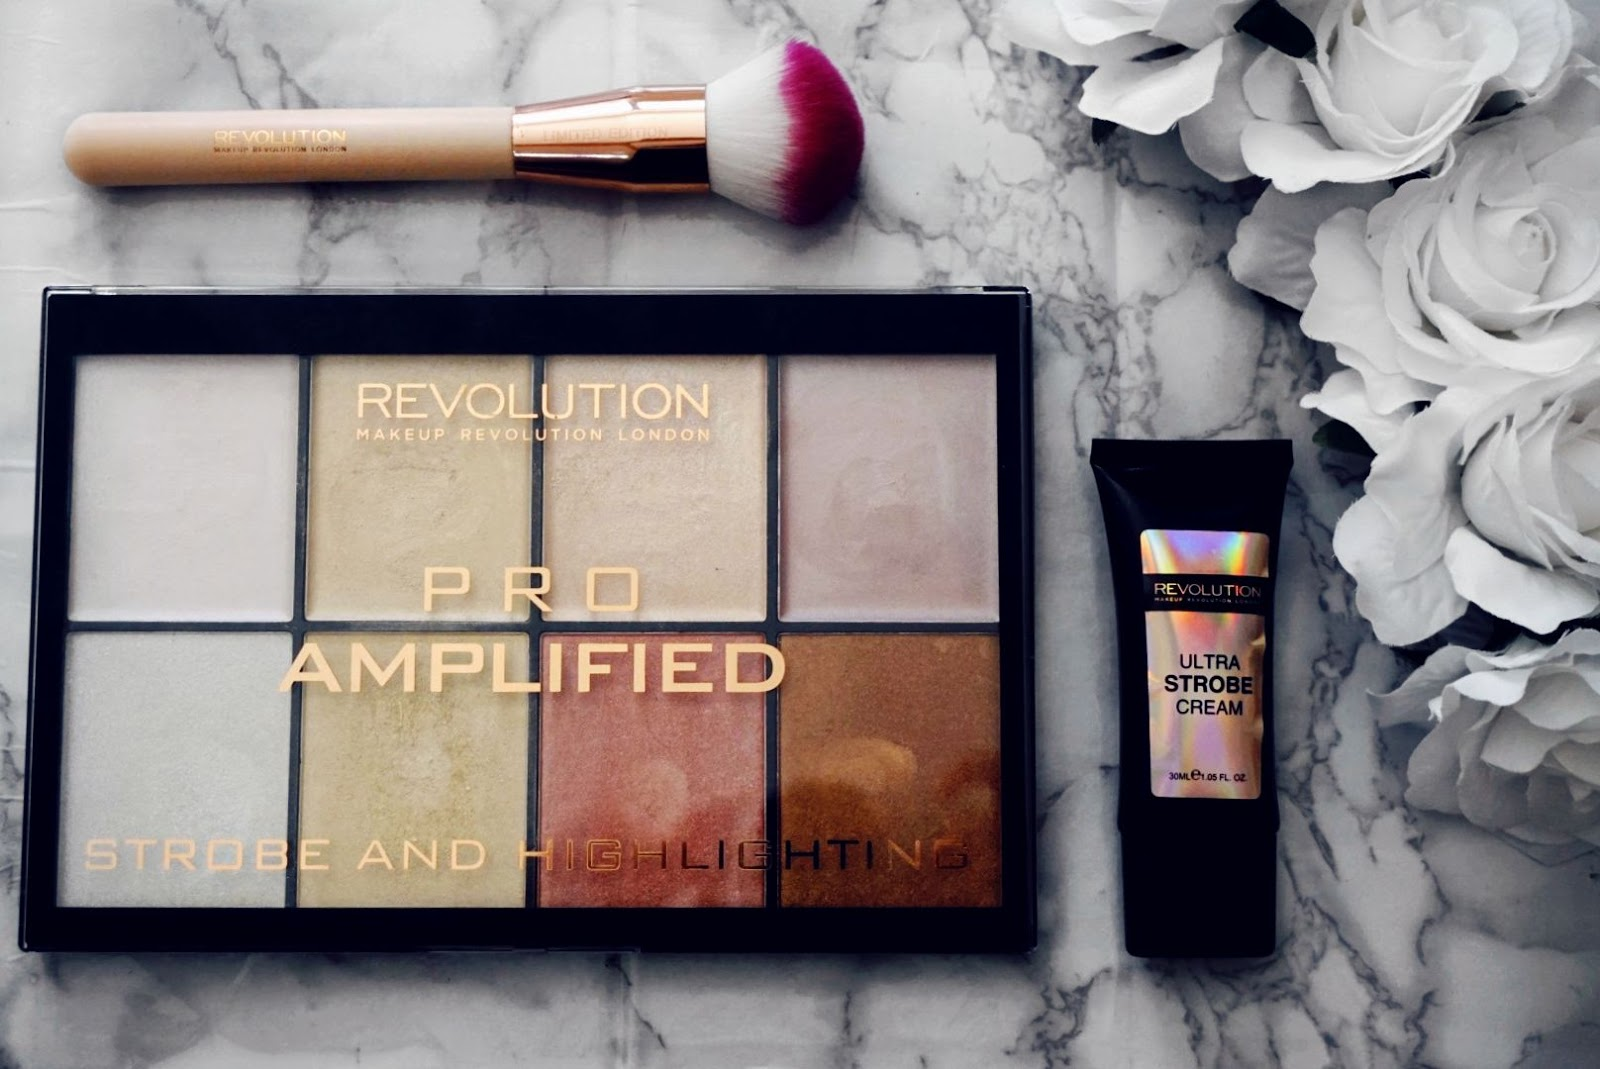 GLOW LIKE A QUEEN WITH THE REVOLUTION AMPLIFIED STROBE AND HIGHLIGHTING GIFT SET